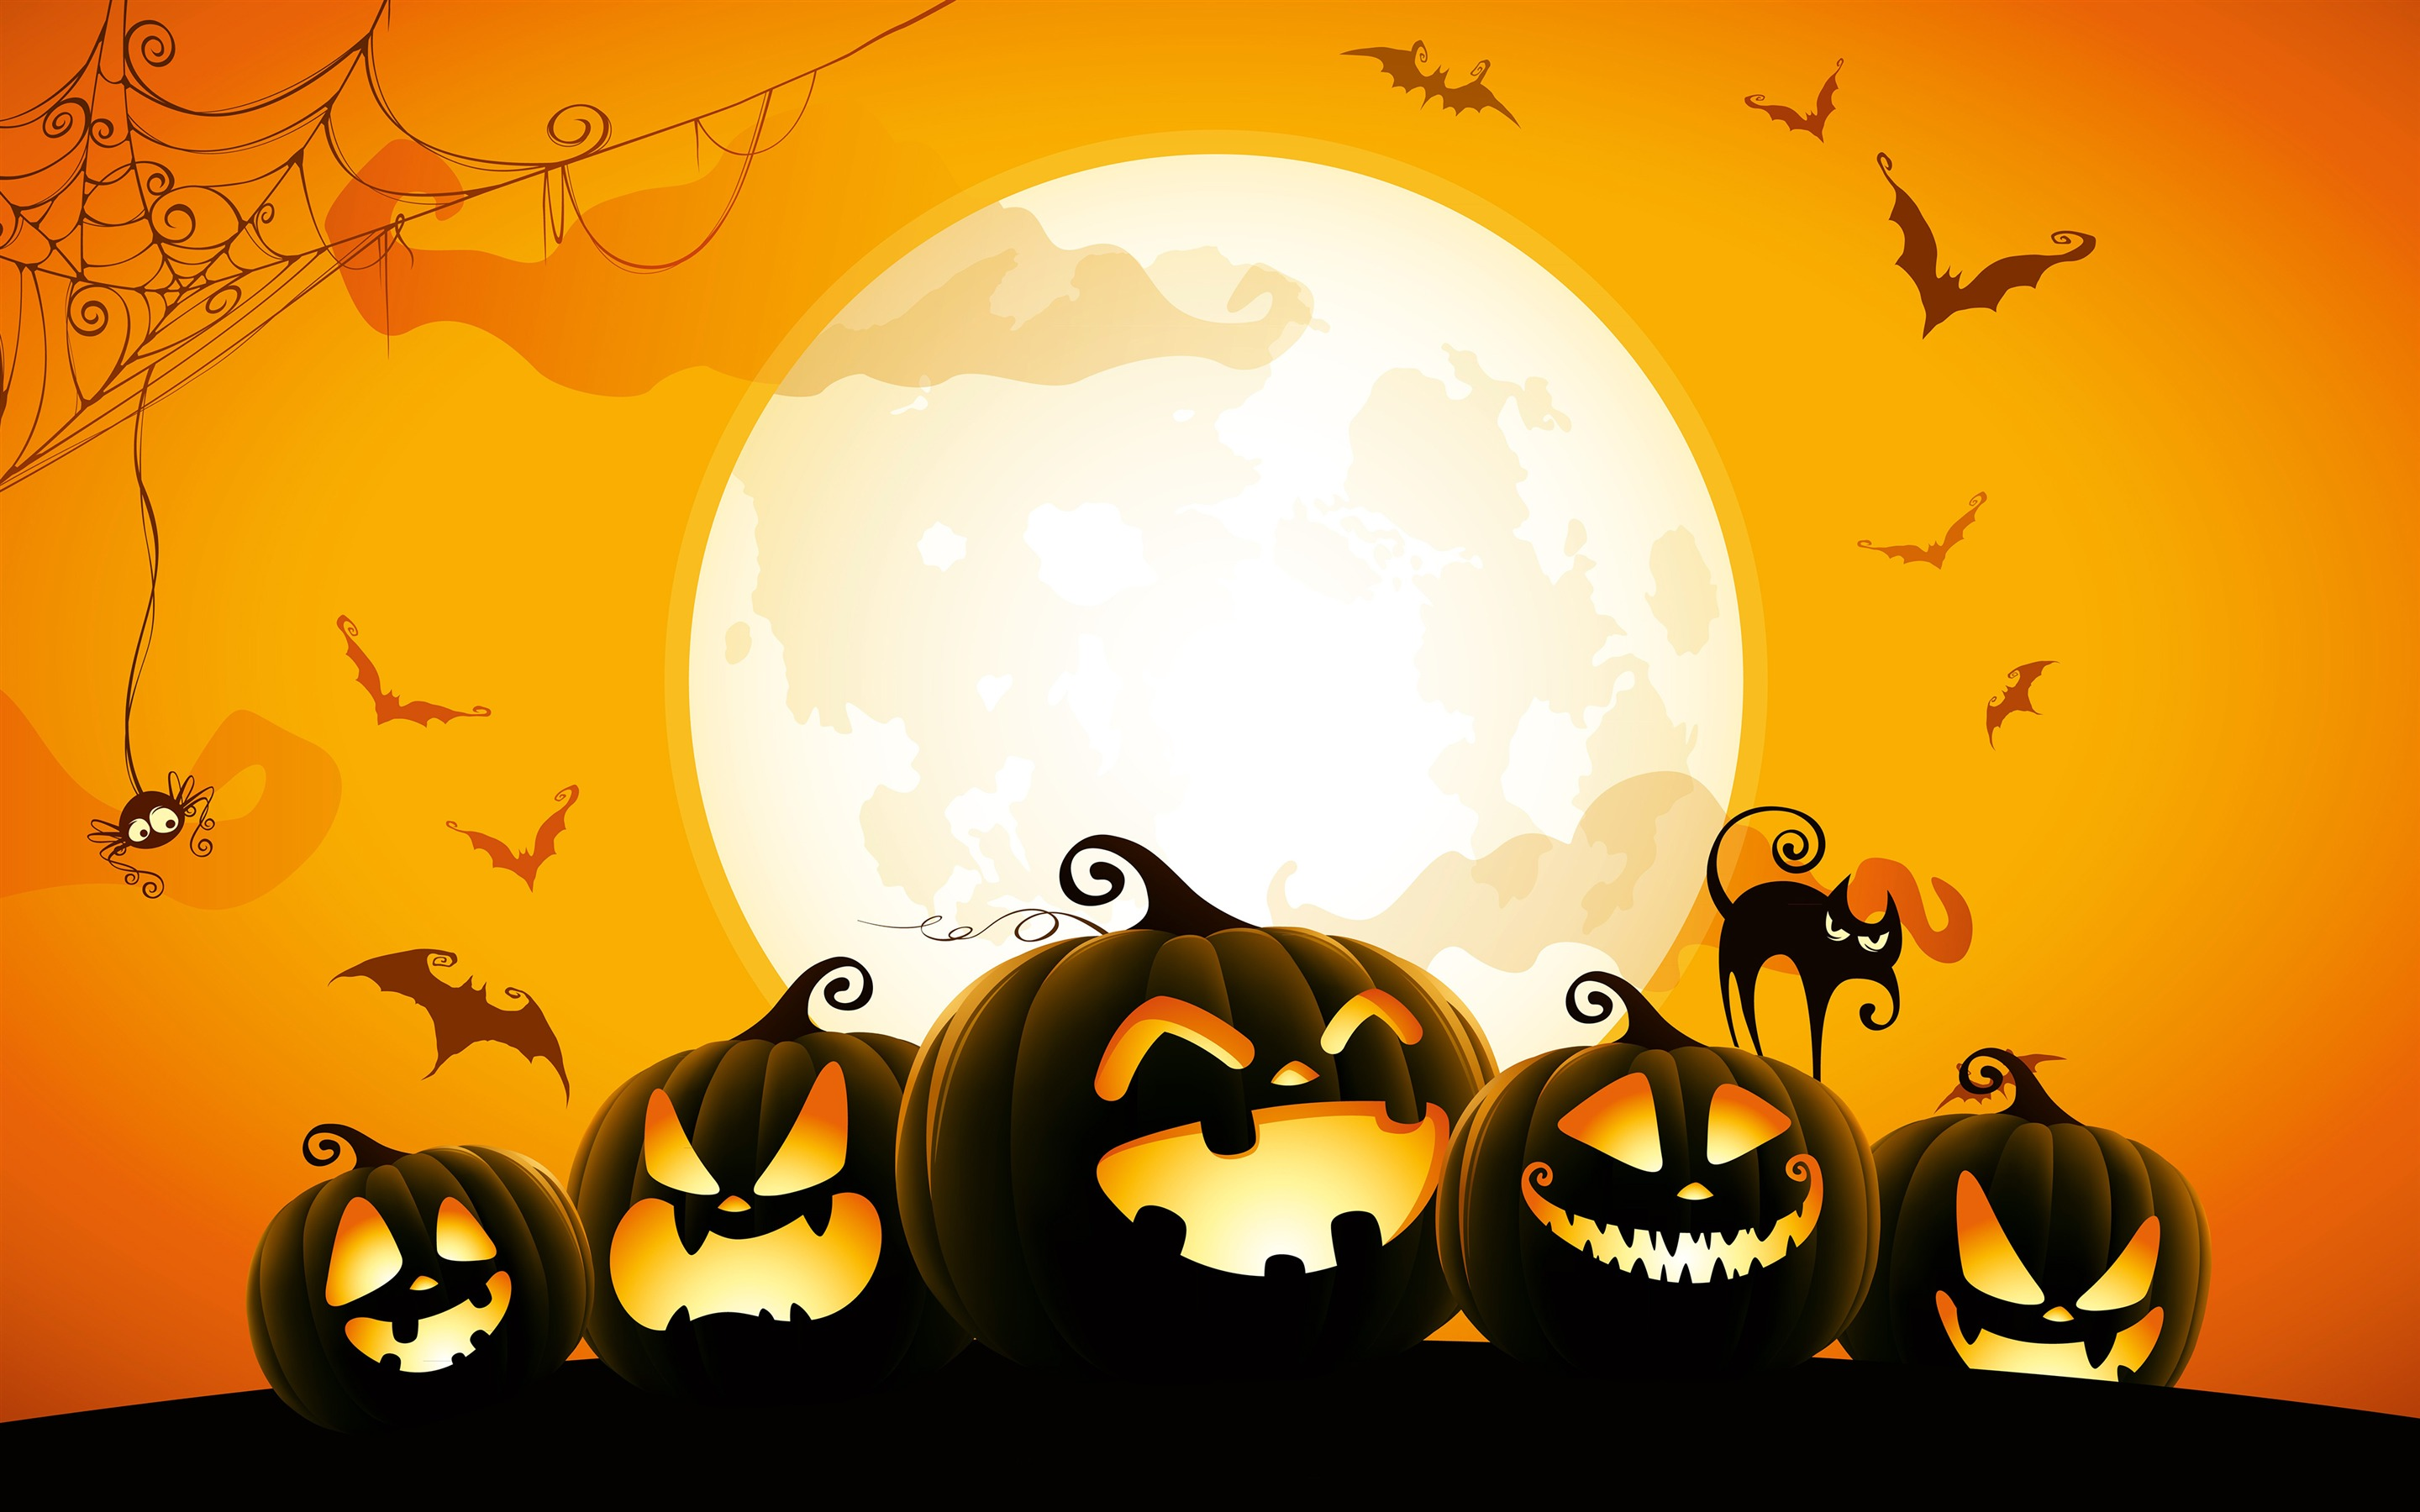 Halloween Pumpkin Spider Cat Bat Wallpaper 2880x1800